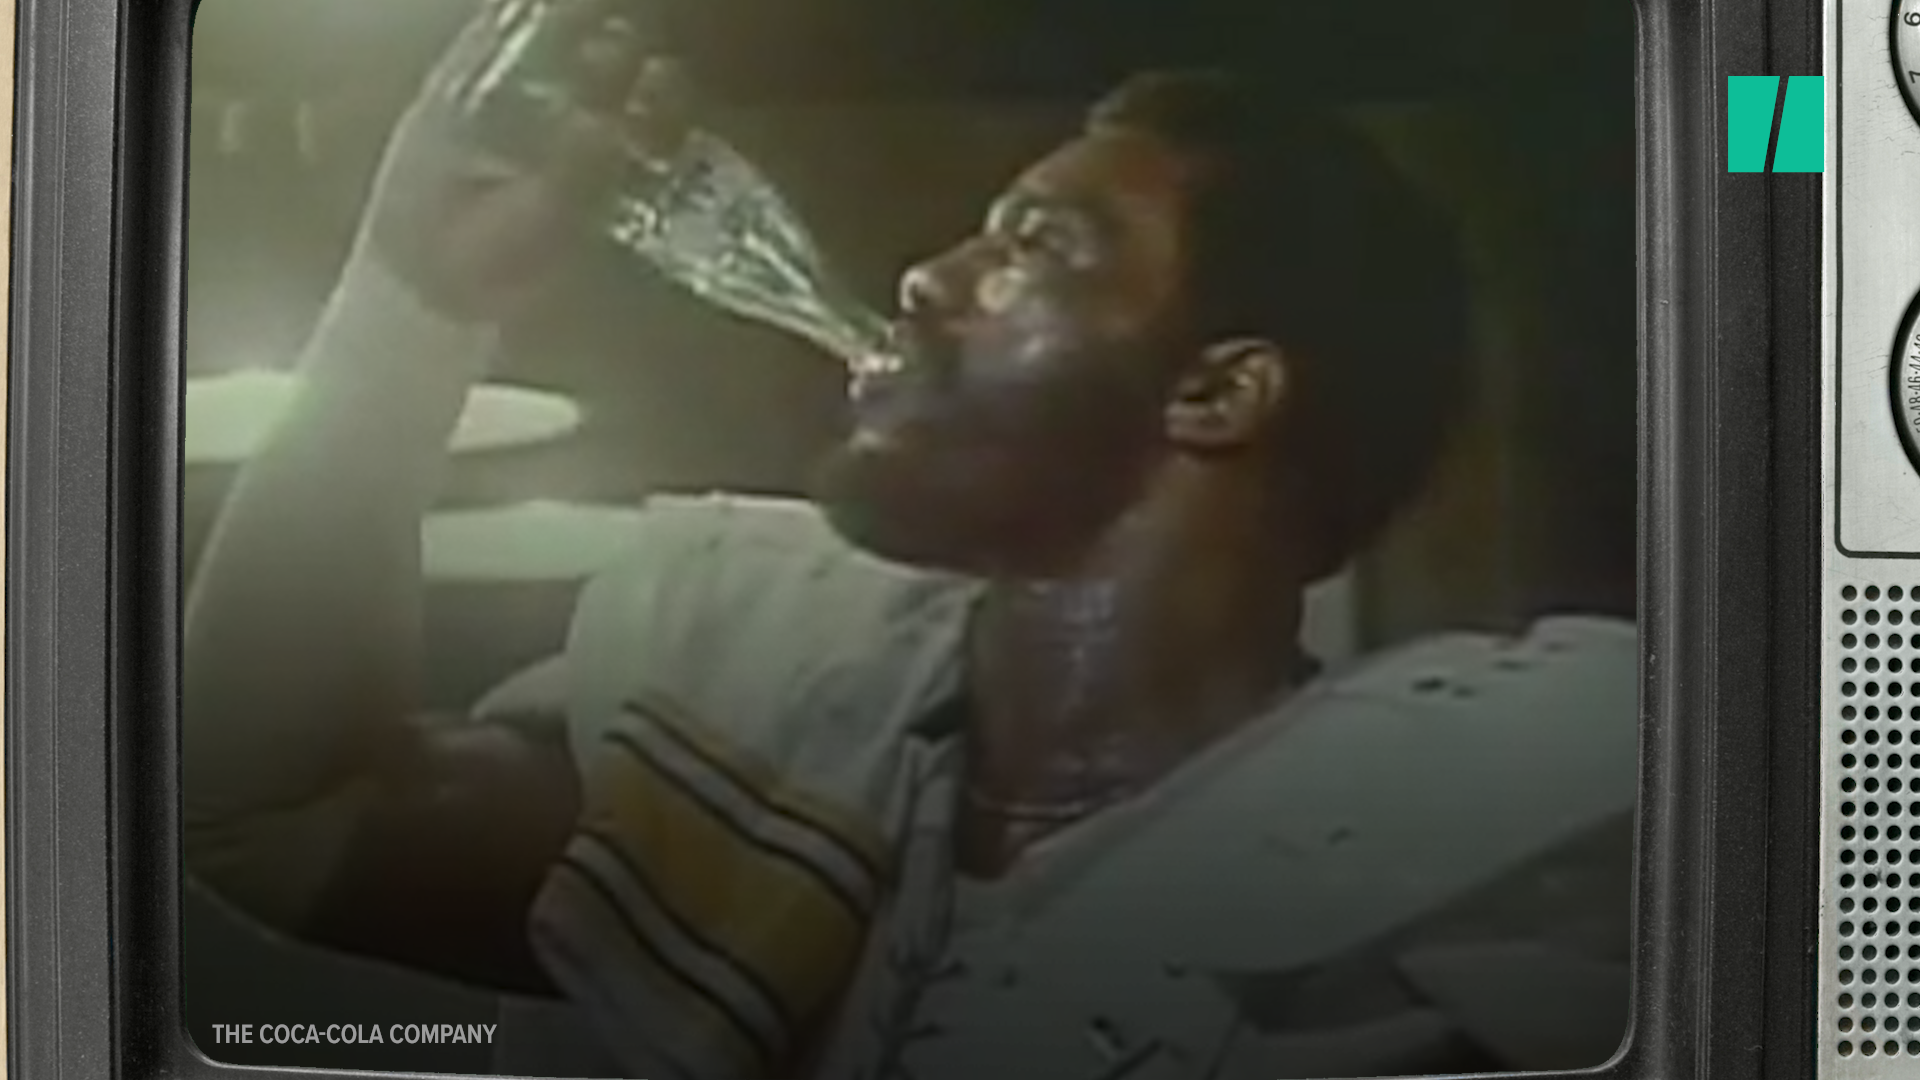 The Most Memorable Super Bowl Commercials From Mean Joe Greene To